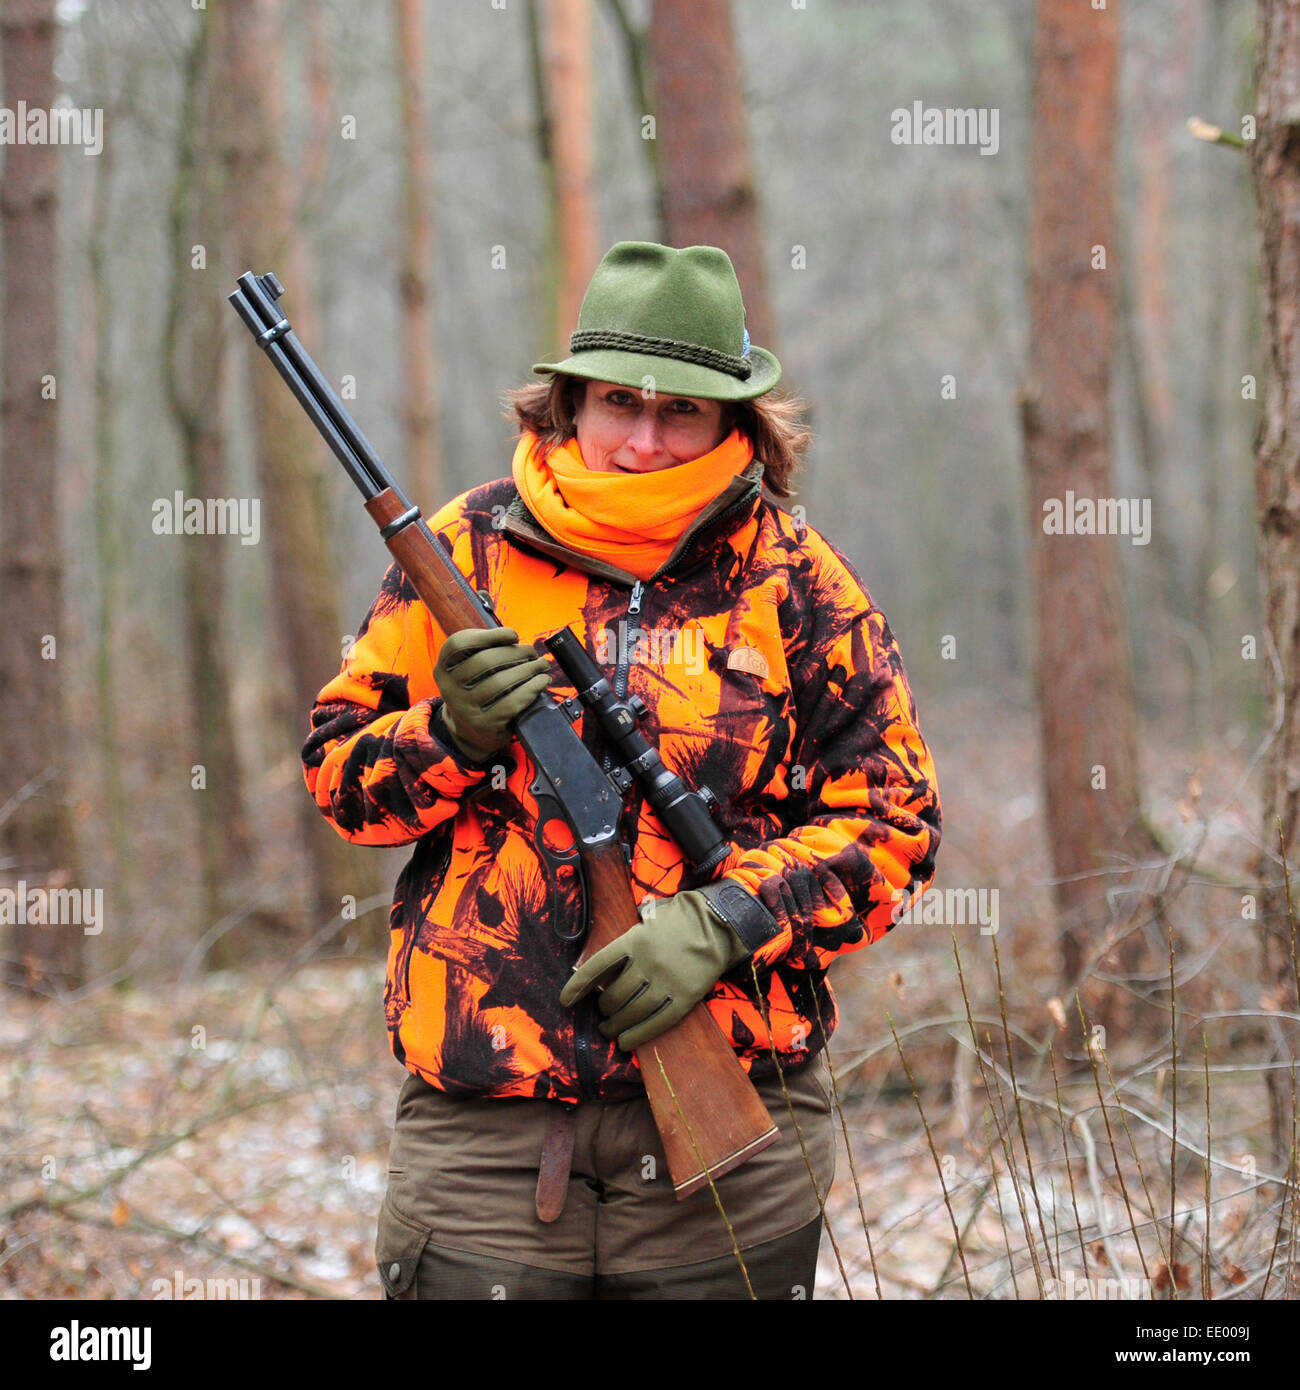 female hunter in Hungary with Marlin lever action rifle - Stock Image